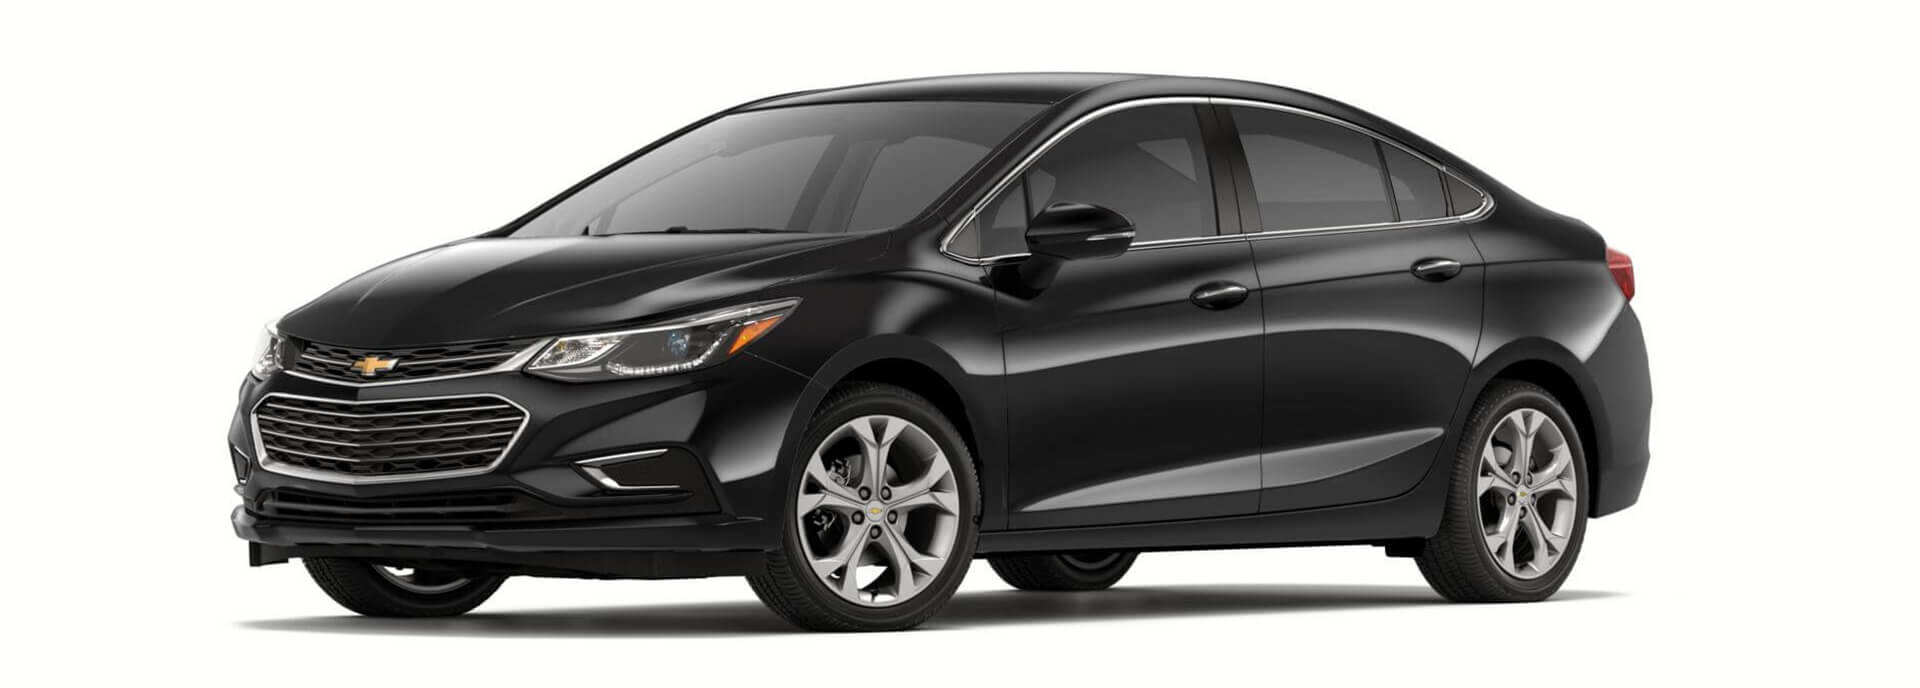 2018 Chevrolet Cruze | Specifications & Info | Cox Chevrolet